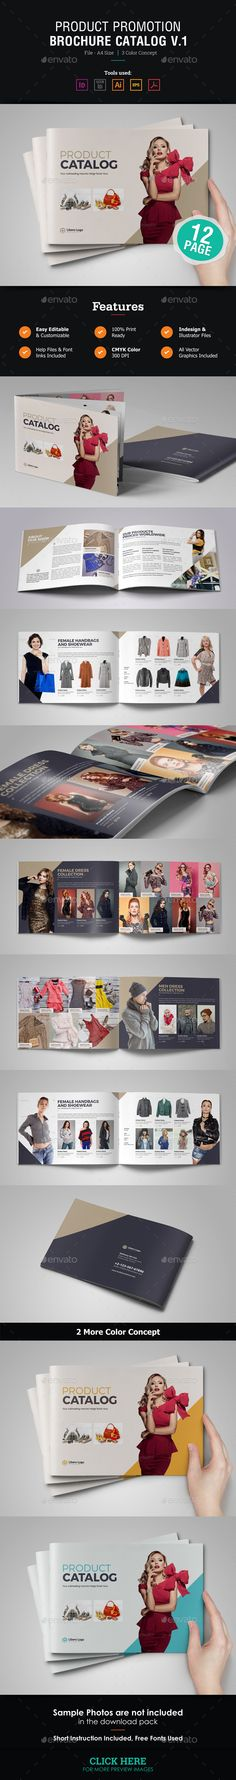 Product Promotion Brochure Catalog Template Vector EPS, InDesign INDD, AI Illustrator #design